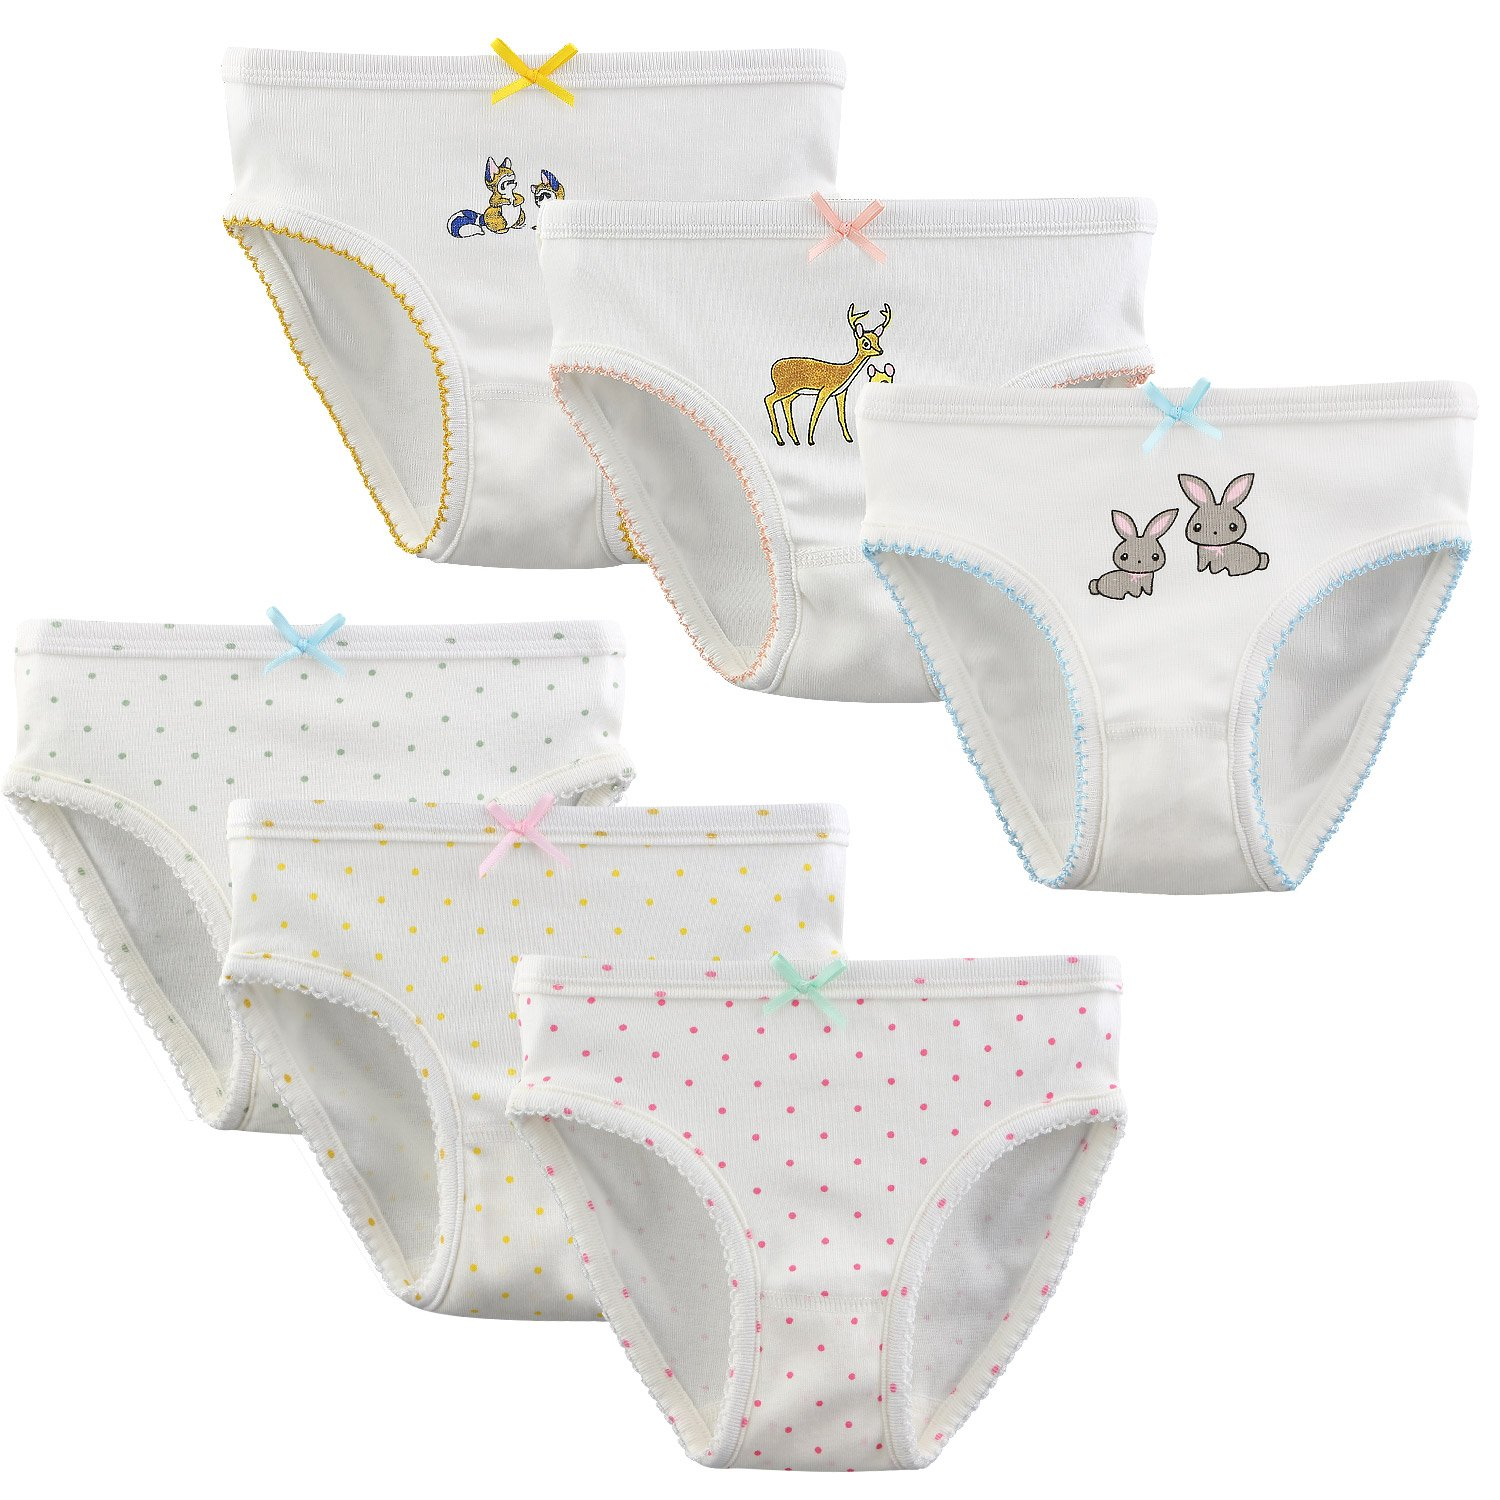 BOOPH 6-Pack Little Girls Baby Toddler Underwear Panties Briefs Soft Cotton Kids Hispster 7-8 Years by BOOPH (Image #1)